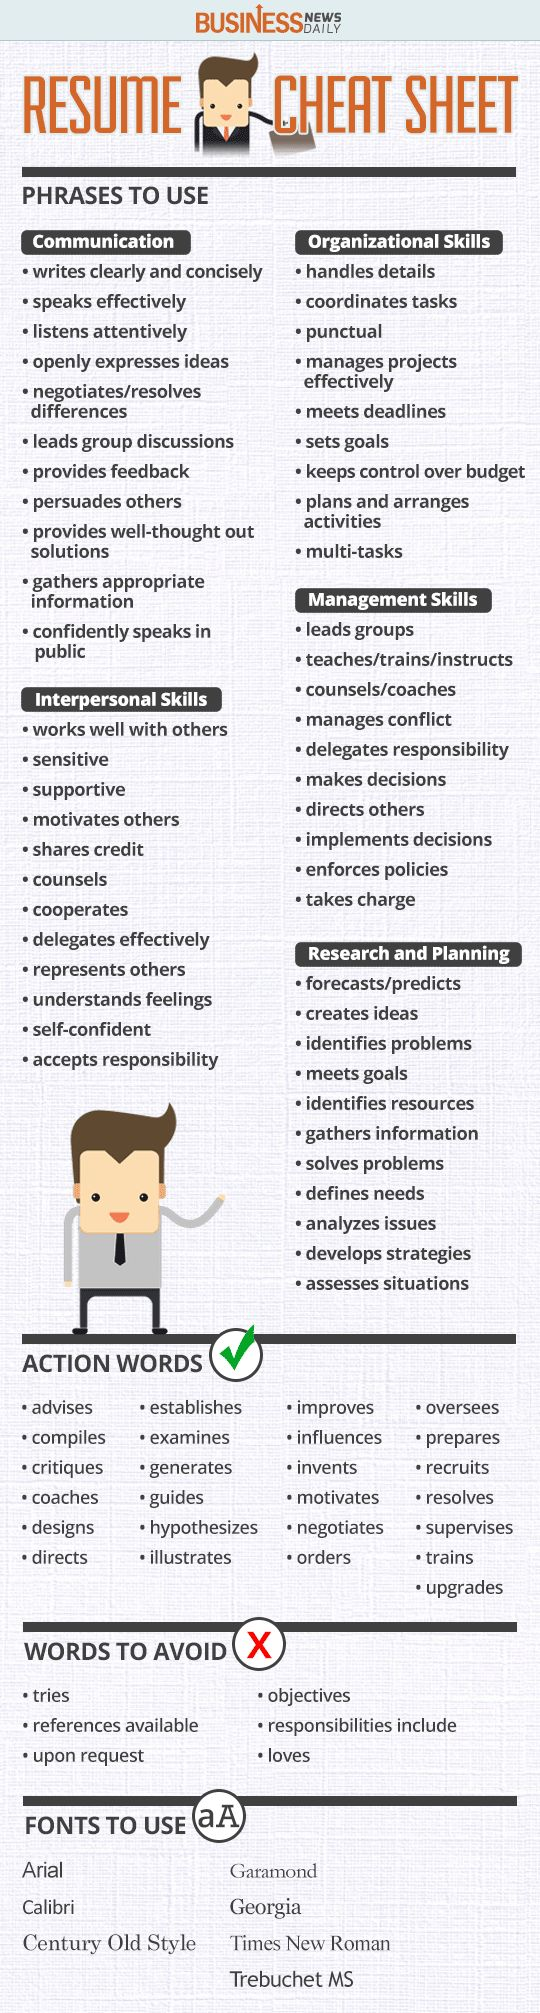 Picnictoimpeachus  Surprising  Ideas About Resume On Pinterest  Cv Format Resume Cv And  With Goodlooking Resume Cheat Sheet Infographic Andrews Almost Done With A Complete Unit On Employment Which With Beautiful Buy Resume Templates Also Best Executive Resumes In Addition Help Build A Resume And Hospital Pharmacist Resume As Well As How Create A Resume Additionally Medical Front Office Resume From Pinterestcom With Picnictoimpeachus  Goodlooking  Ideas About Resume On Pinterest  Cv Format Resume Cv And  With Beautiful Resume Cheat Sheet Infographic Andrews Almost Done With A Complete Unit On Employment Which And Surprising Buy Resume Templates Also Best Executive Resumes In Addition Help Build A Resume From Pinterestcom